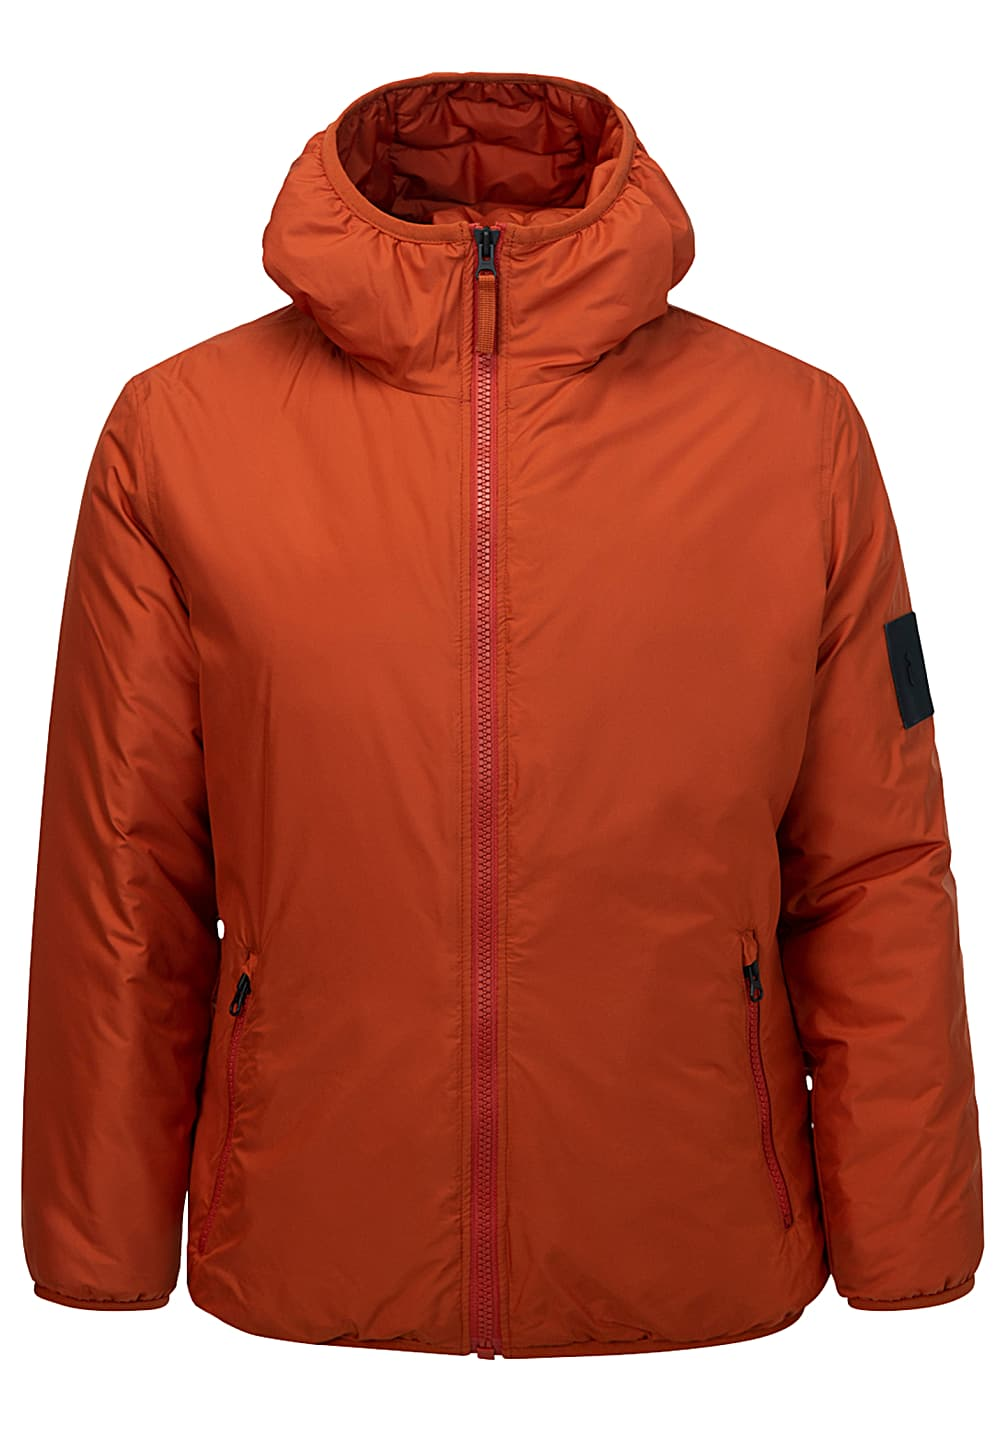 PEAK PERFORMANCE Troop L Outdoor Jacket for Men Orange